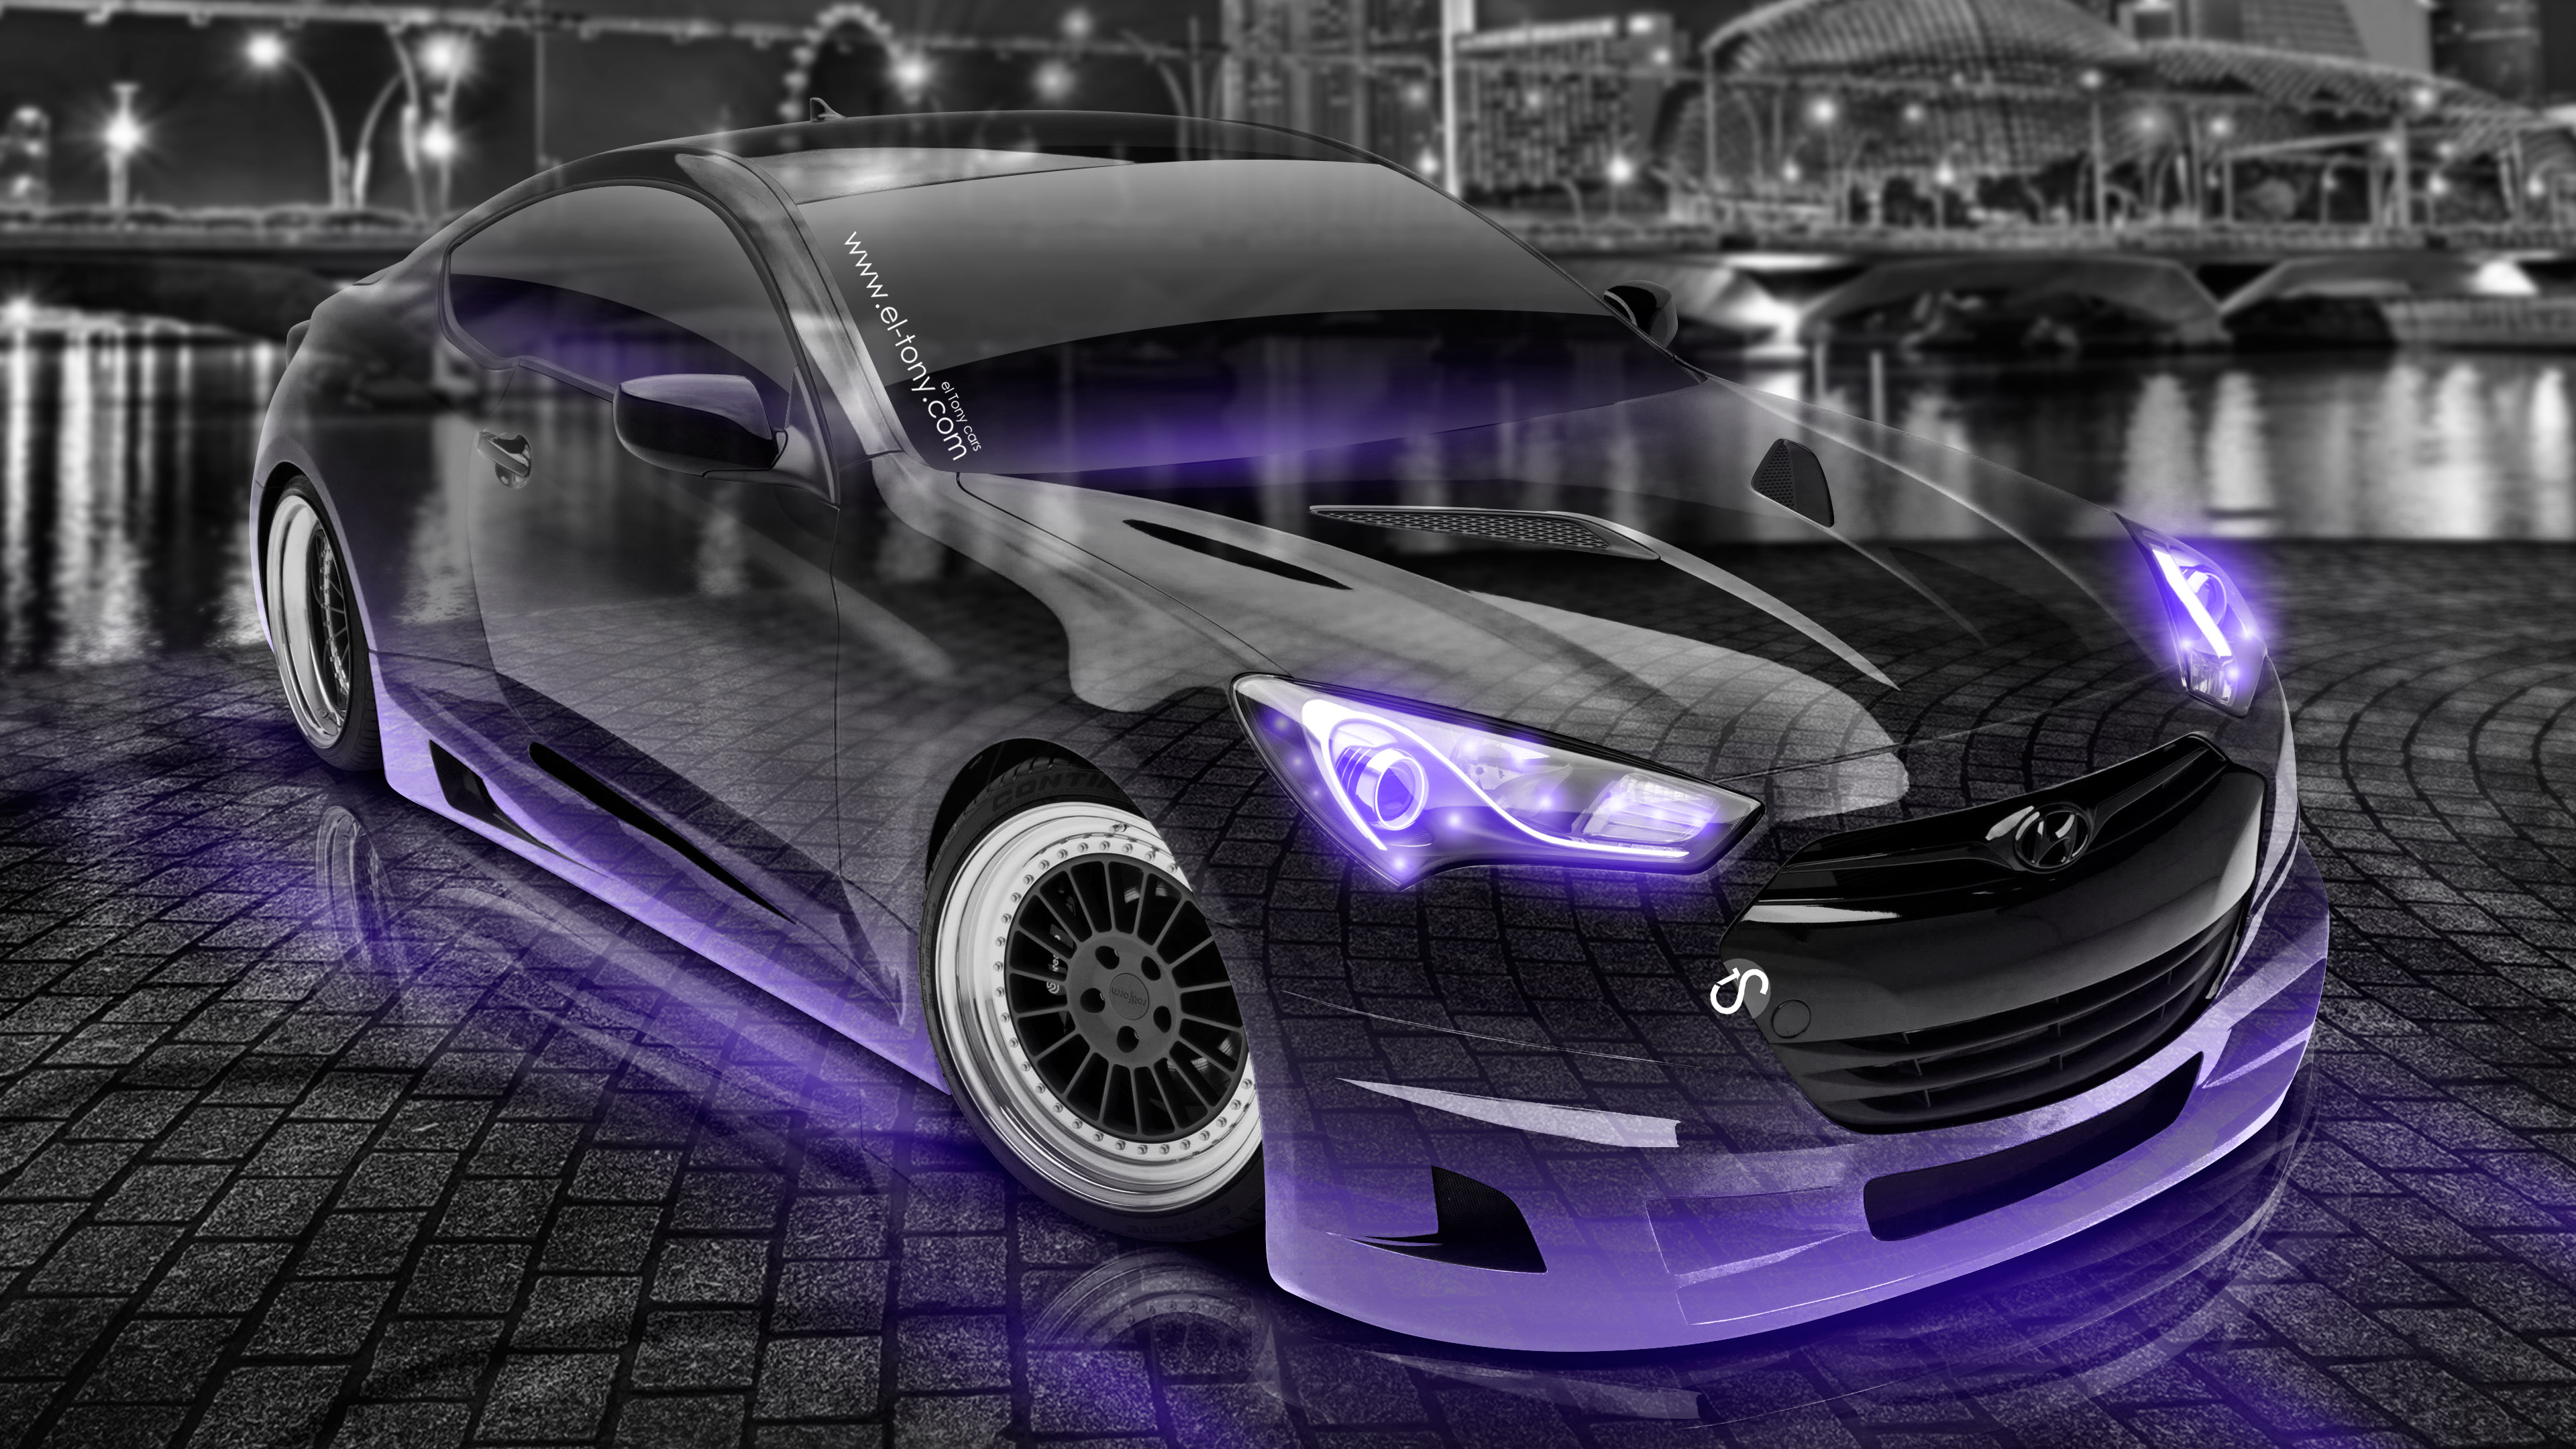 Hyundai-Genesis-Coupe-Tuning-3D-Crystal-City-Night-Car-2016-Creative-Art-Violet-Neon-Colors-4K-Wallpapers-design-by-Tony-Kokhan-www.el-tony.com-image